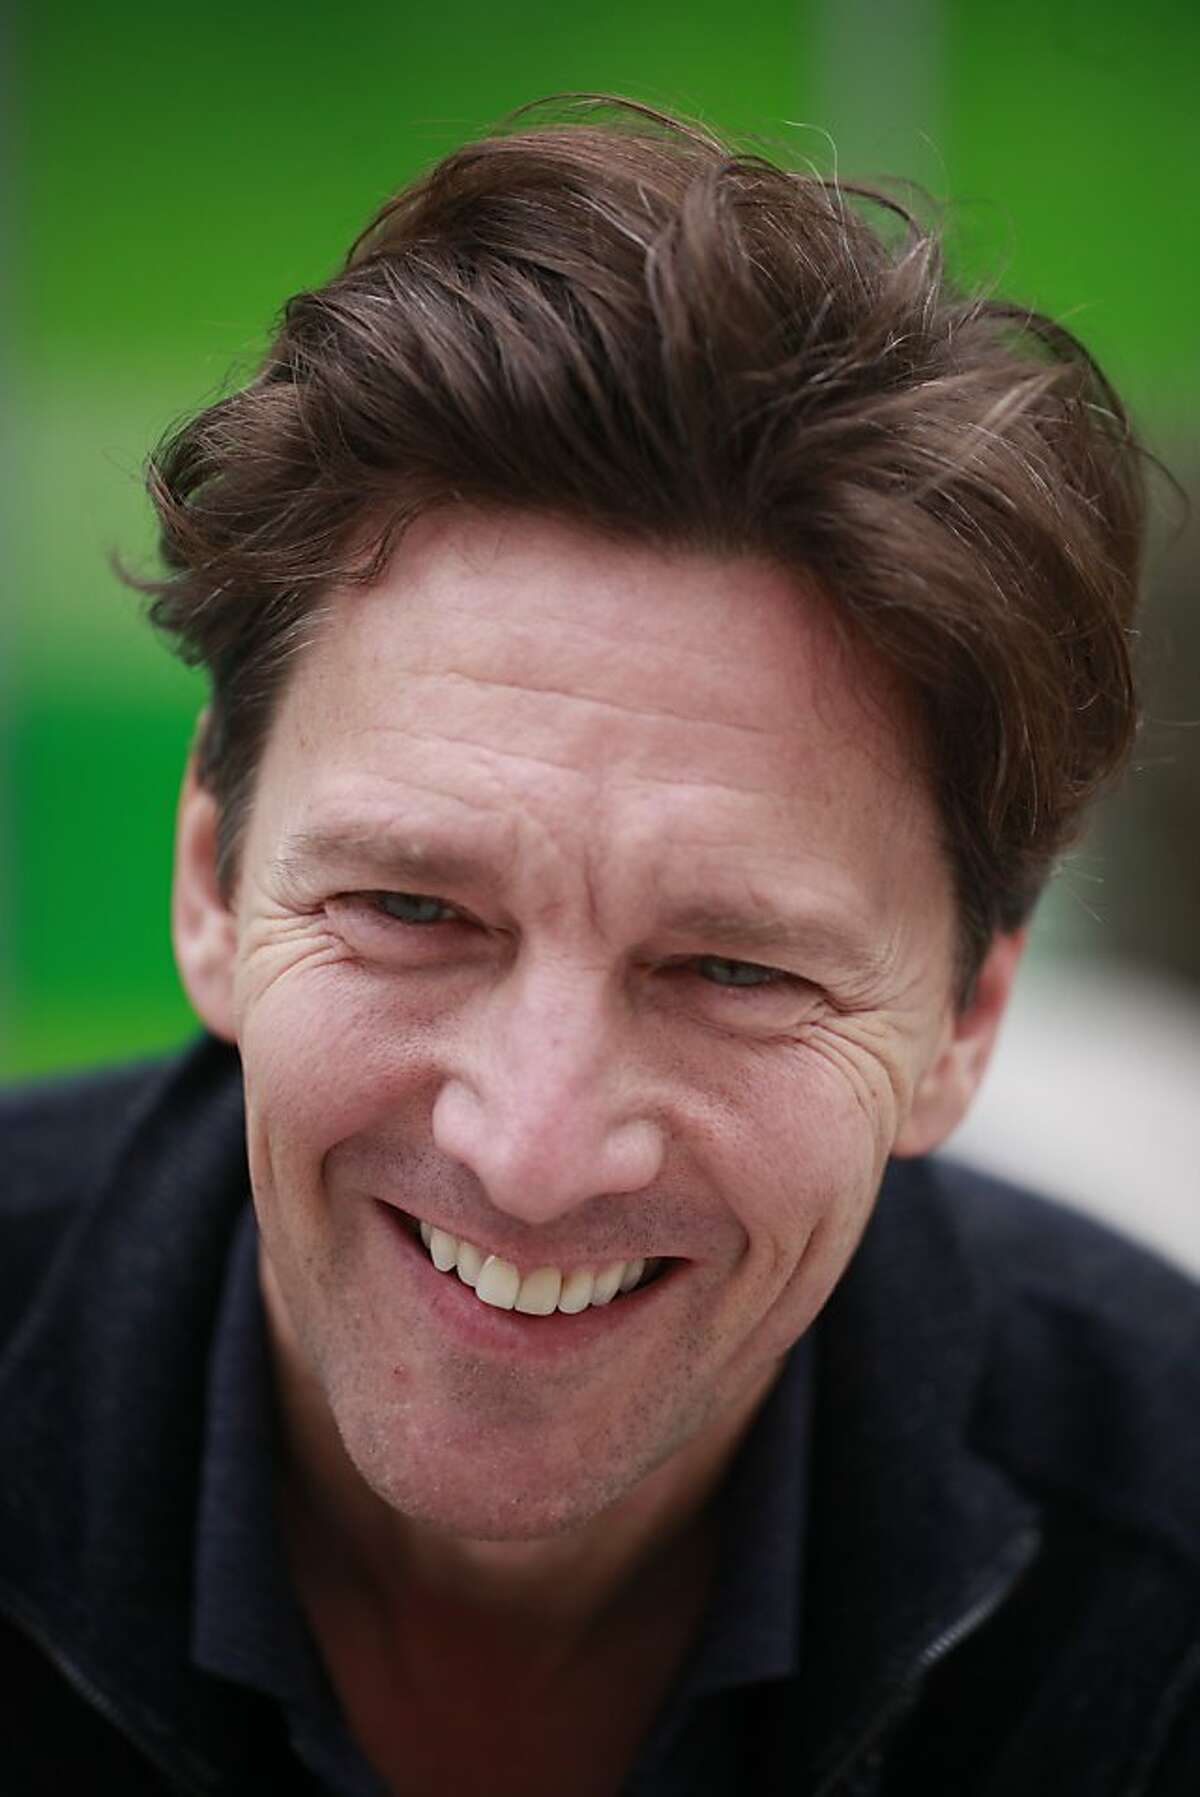 Andrew McCarthy, author of